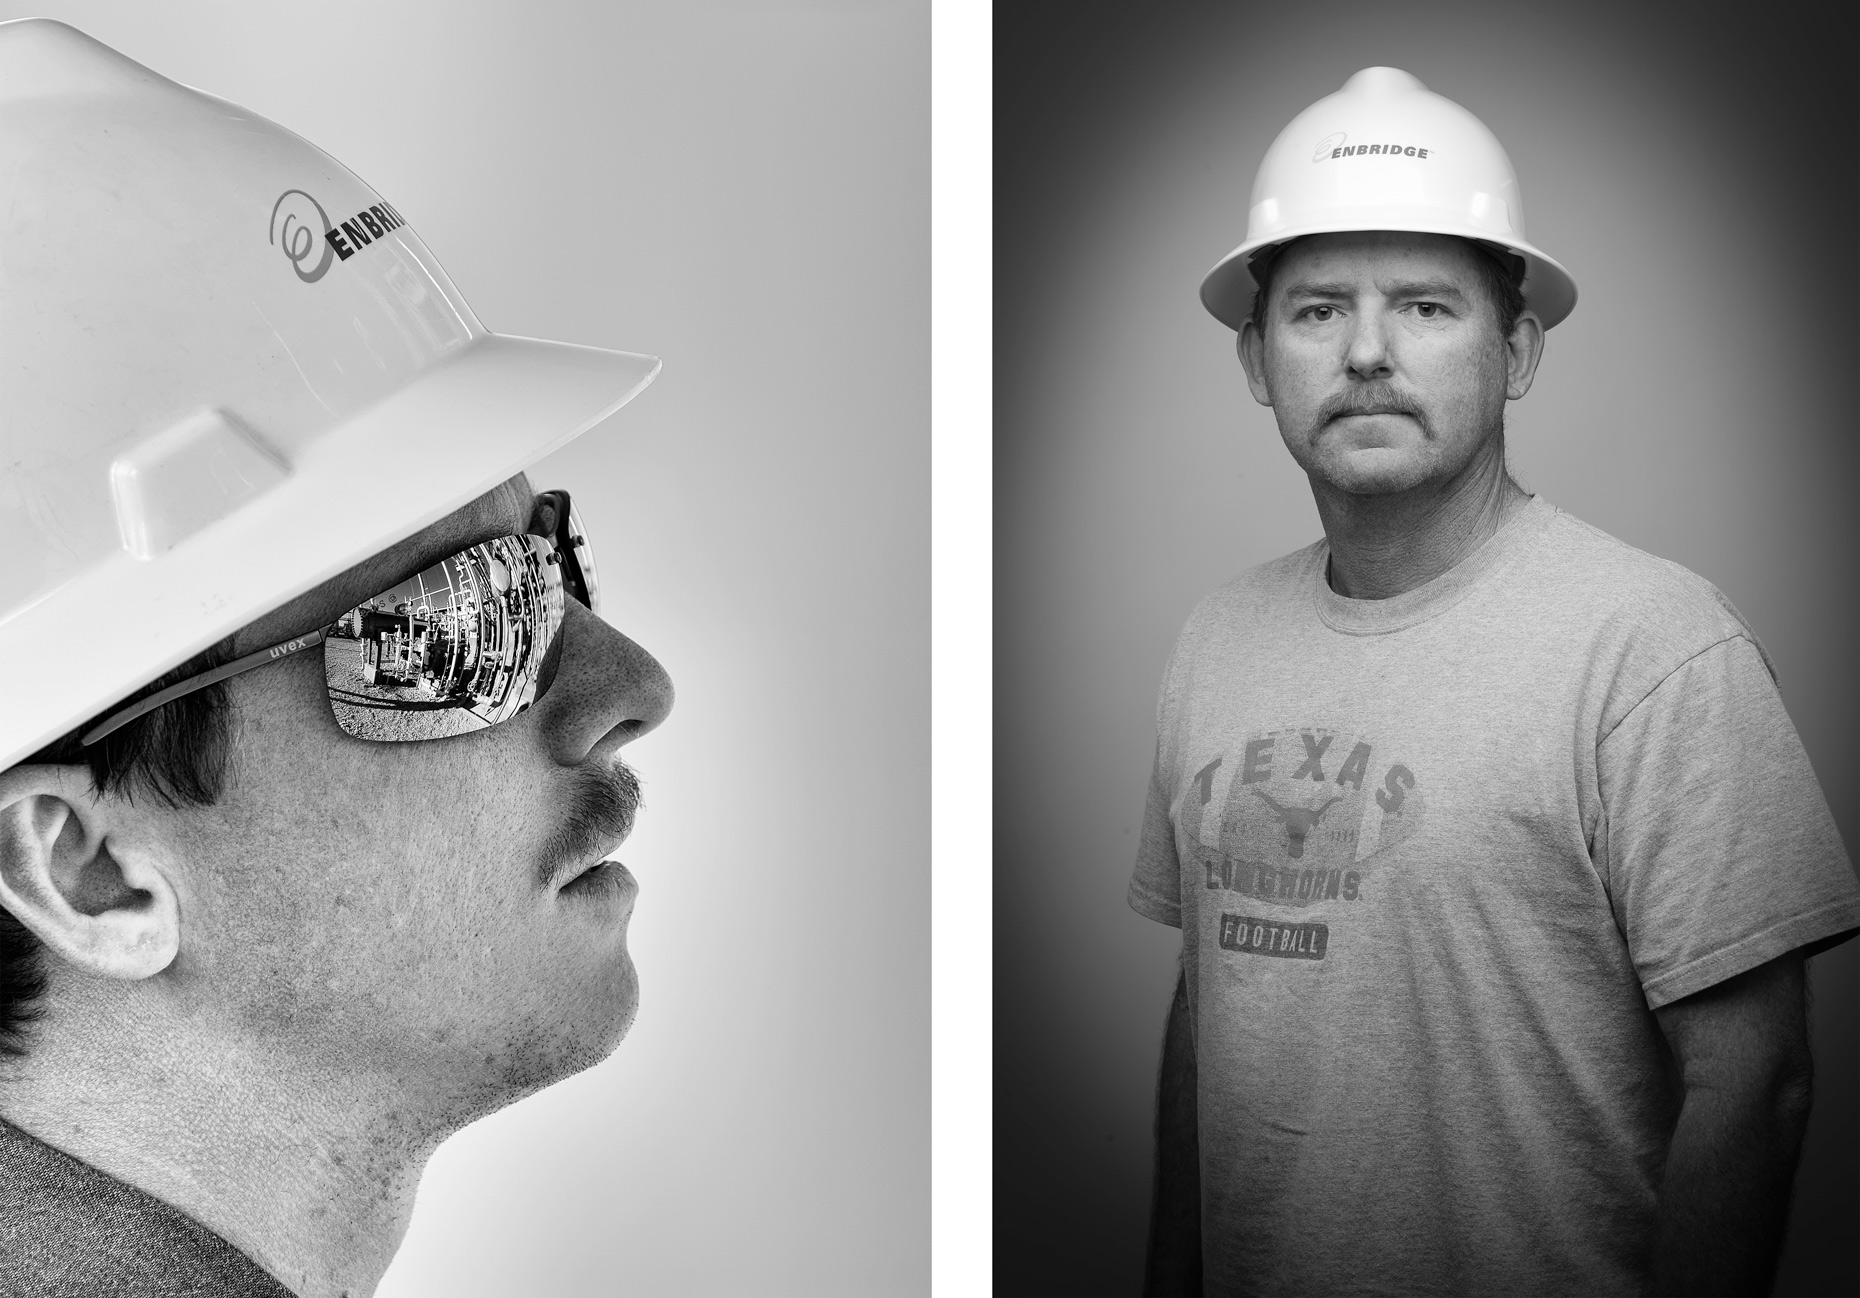 Oil and gas worker portraits by Kevin Brown, photographed in east Texas.